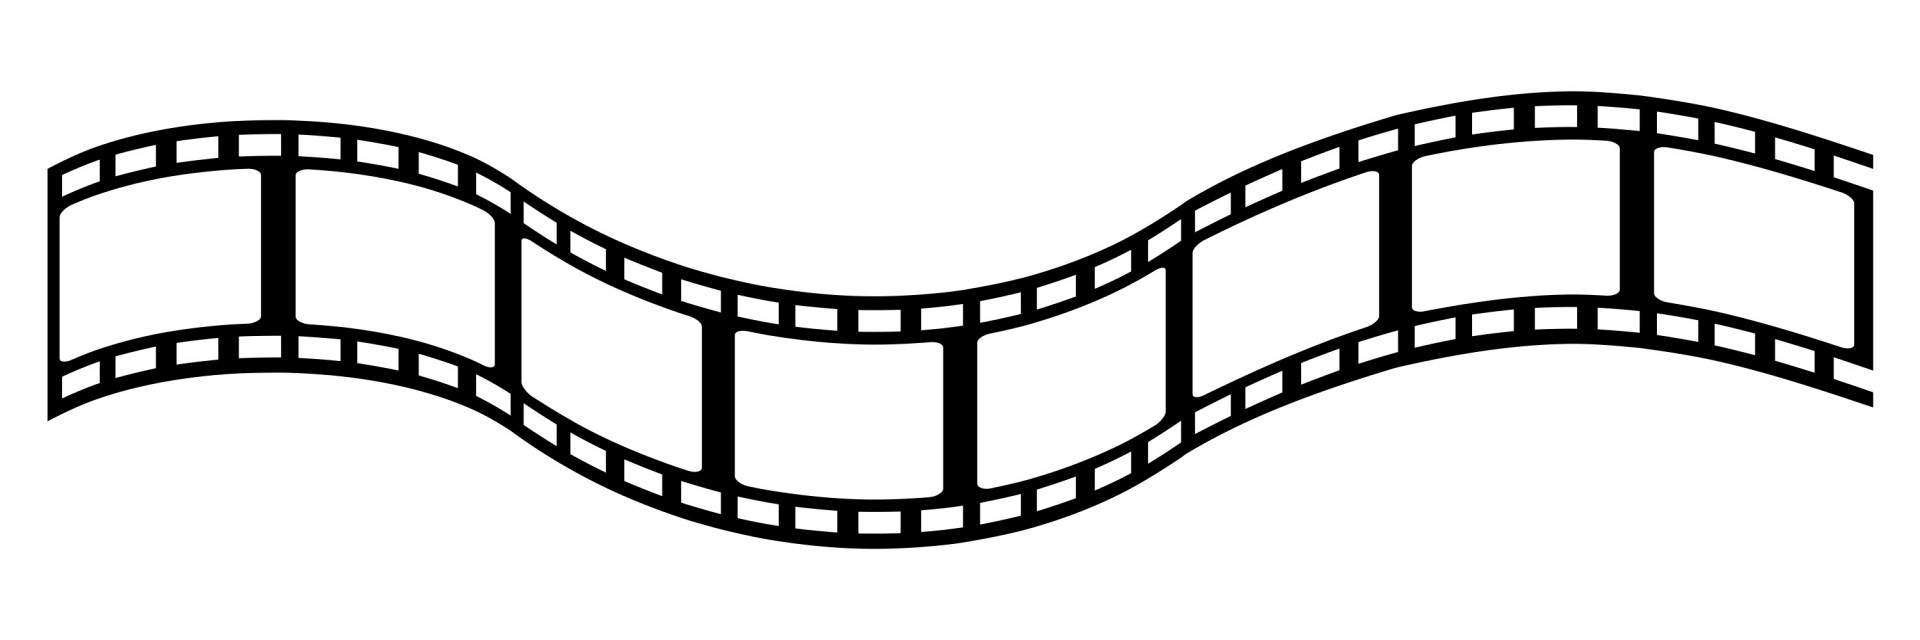 Images Of Film Strip.